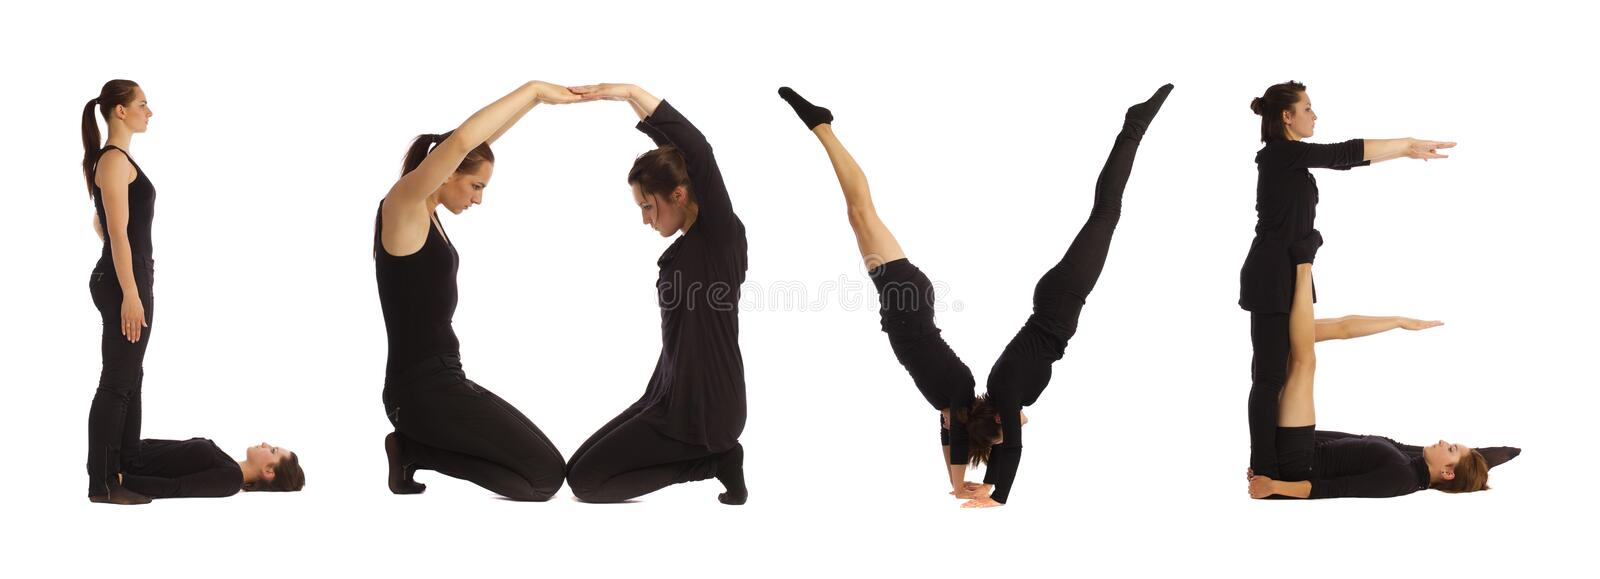 Download Black Dressed People Forming Word LOVE Stock Image - Image of human, body: 92121837